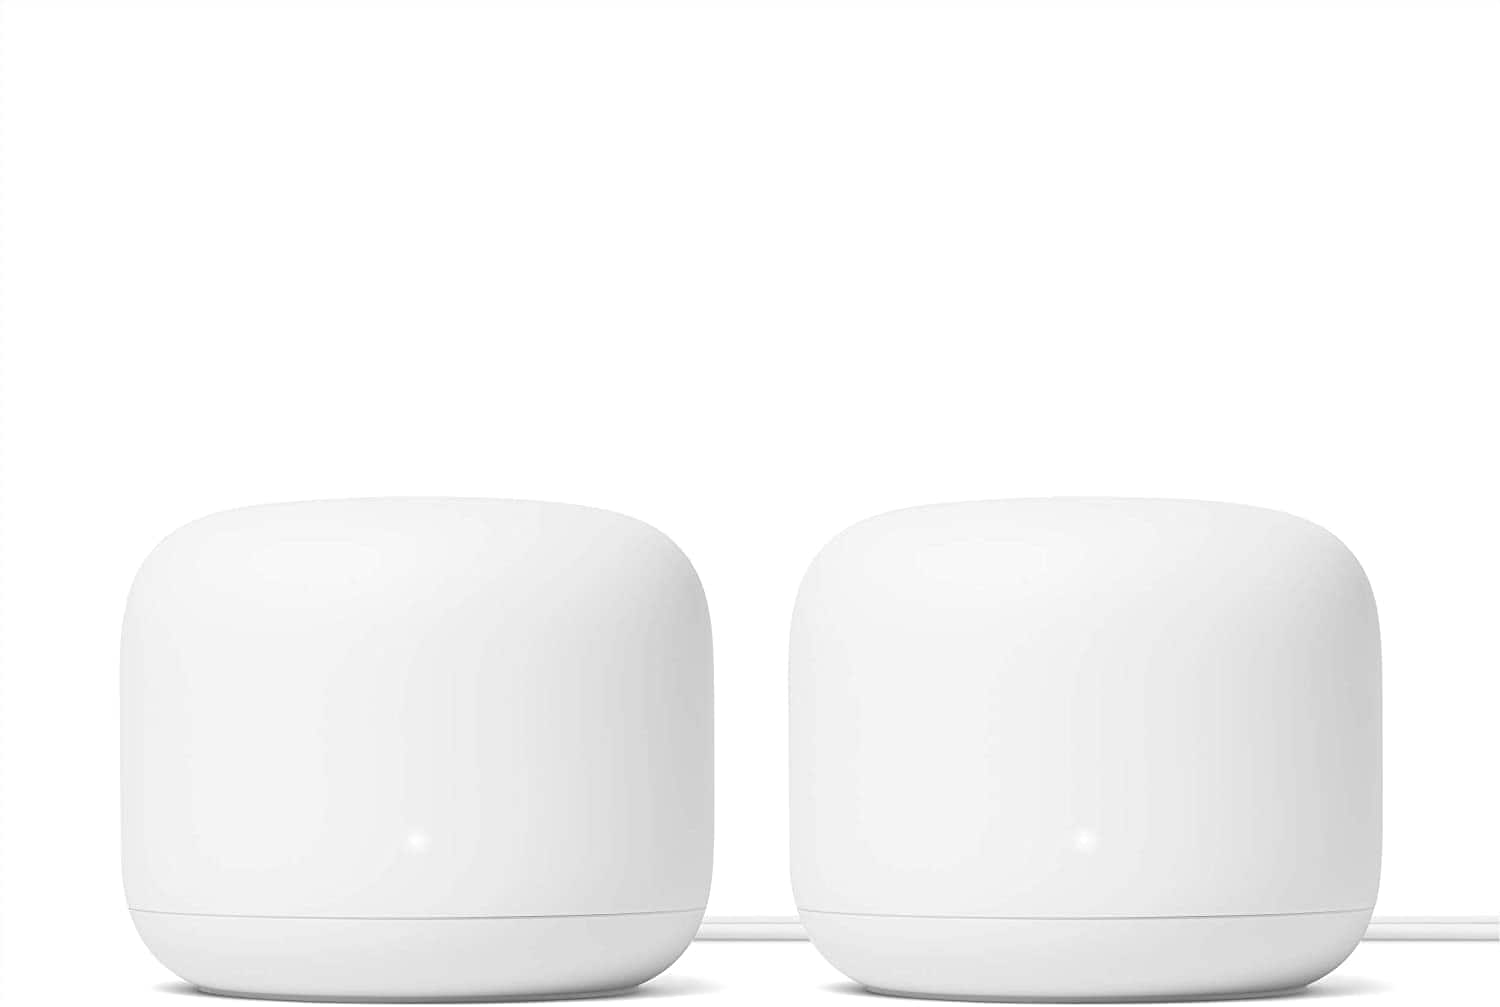 Google Nest WiFi Router 2 Pack $239